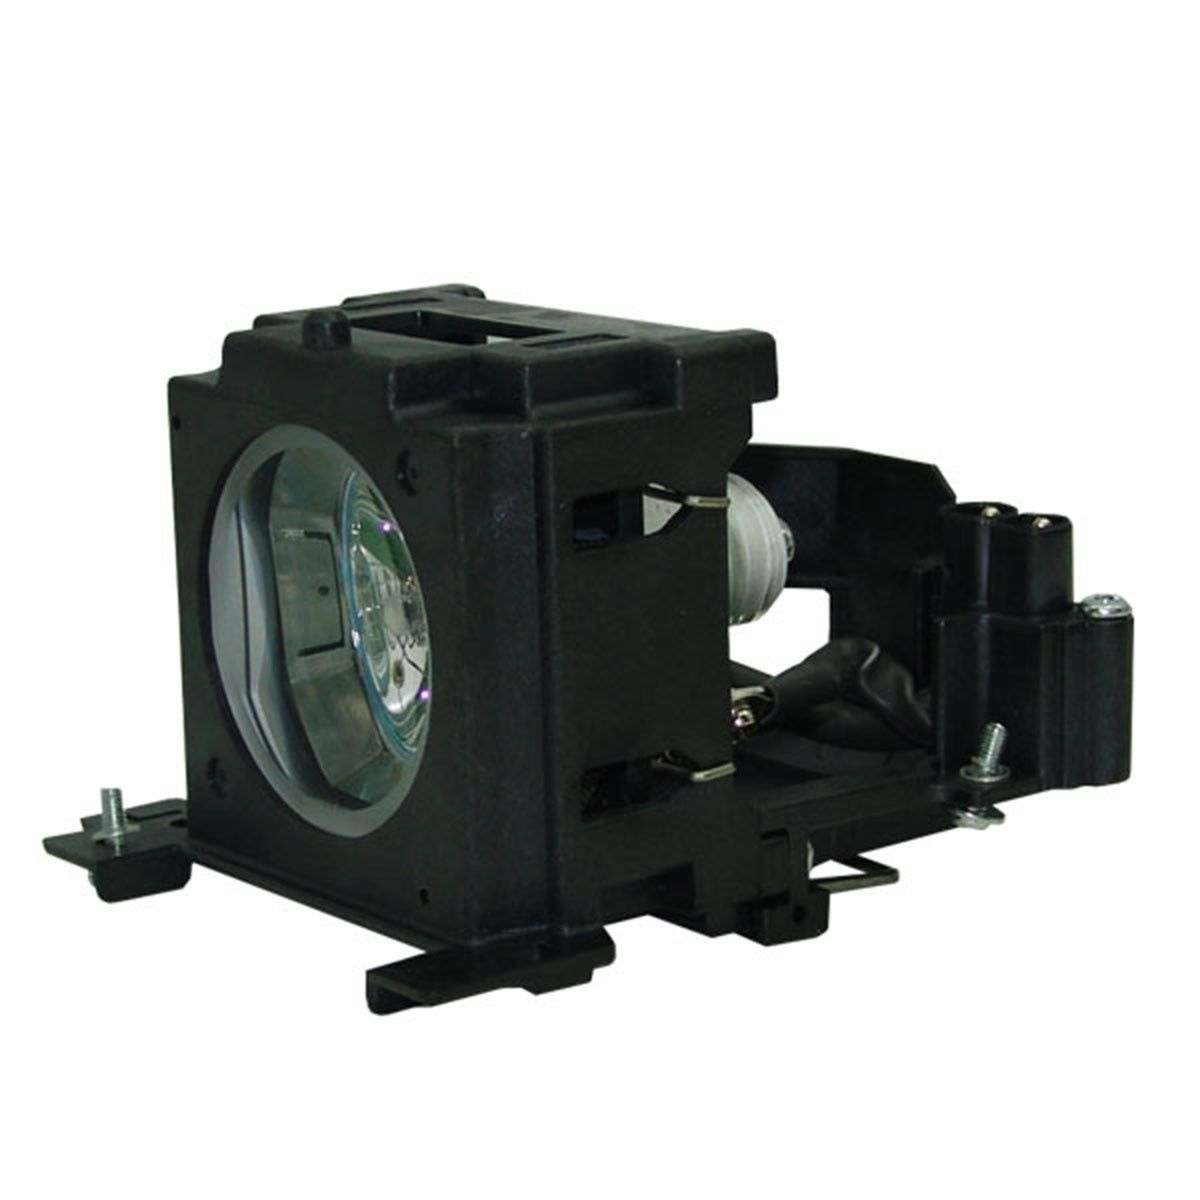 Projector Lamp Bulb DT00757 DT-00757 for HITACHI CP-X251 CP-X256 ED-X10 ED-X1092 ED-X12 ED-X15 with housing compatible projector lamp for hitachi dt01091 cp aw100n cp d10 cp dw10n ed aw100n ed aw110n ed d10n ed d11n hcp q3 hcp q3w